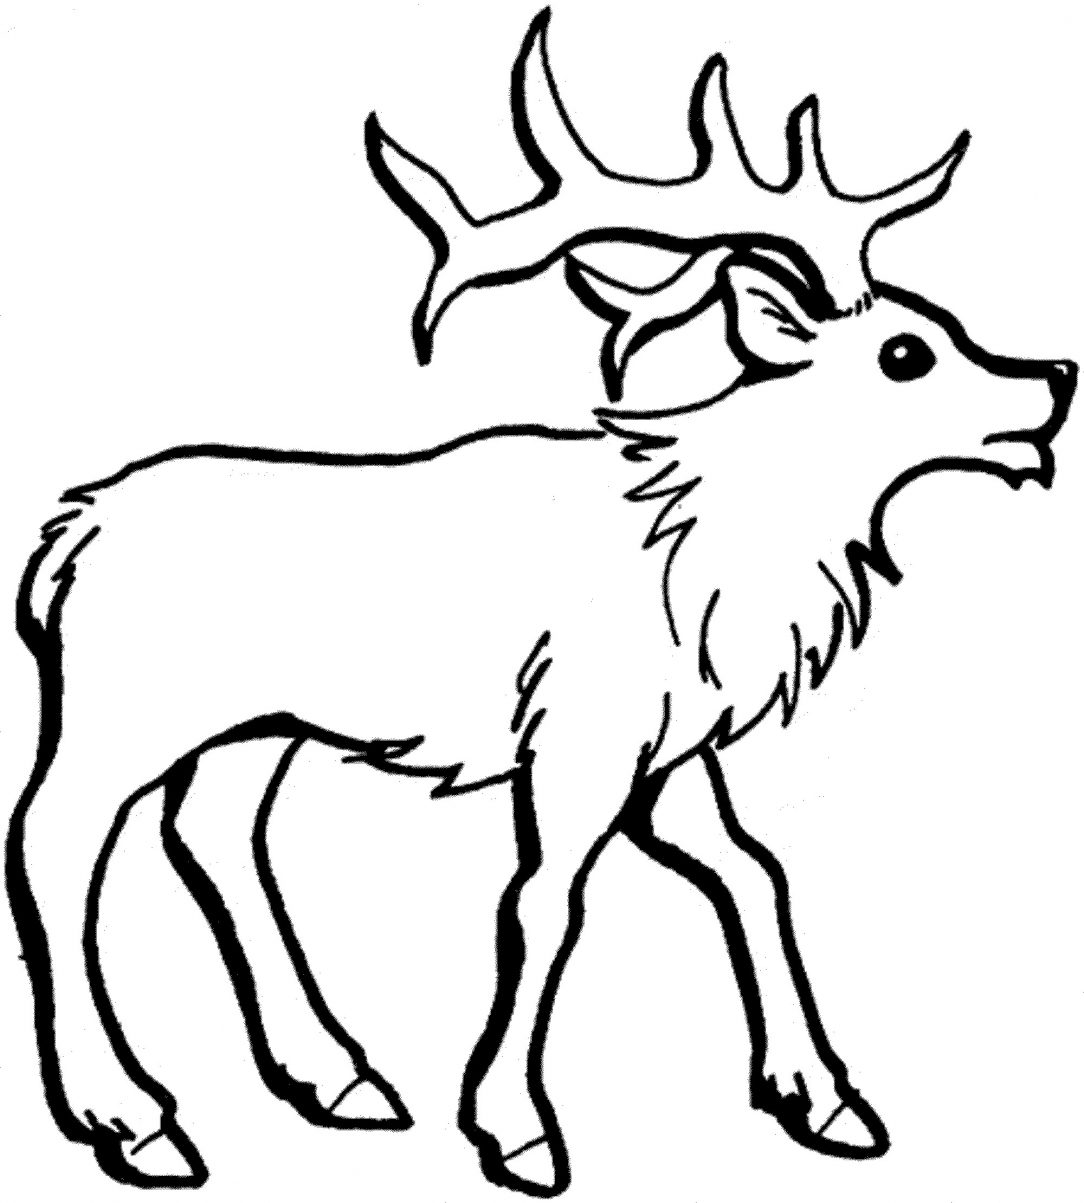 1084x1203 Antler Dream Catcher Drawing Images Buck Designs Whitetail Big